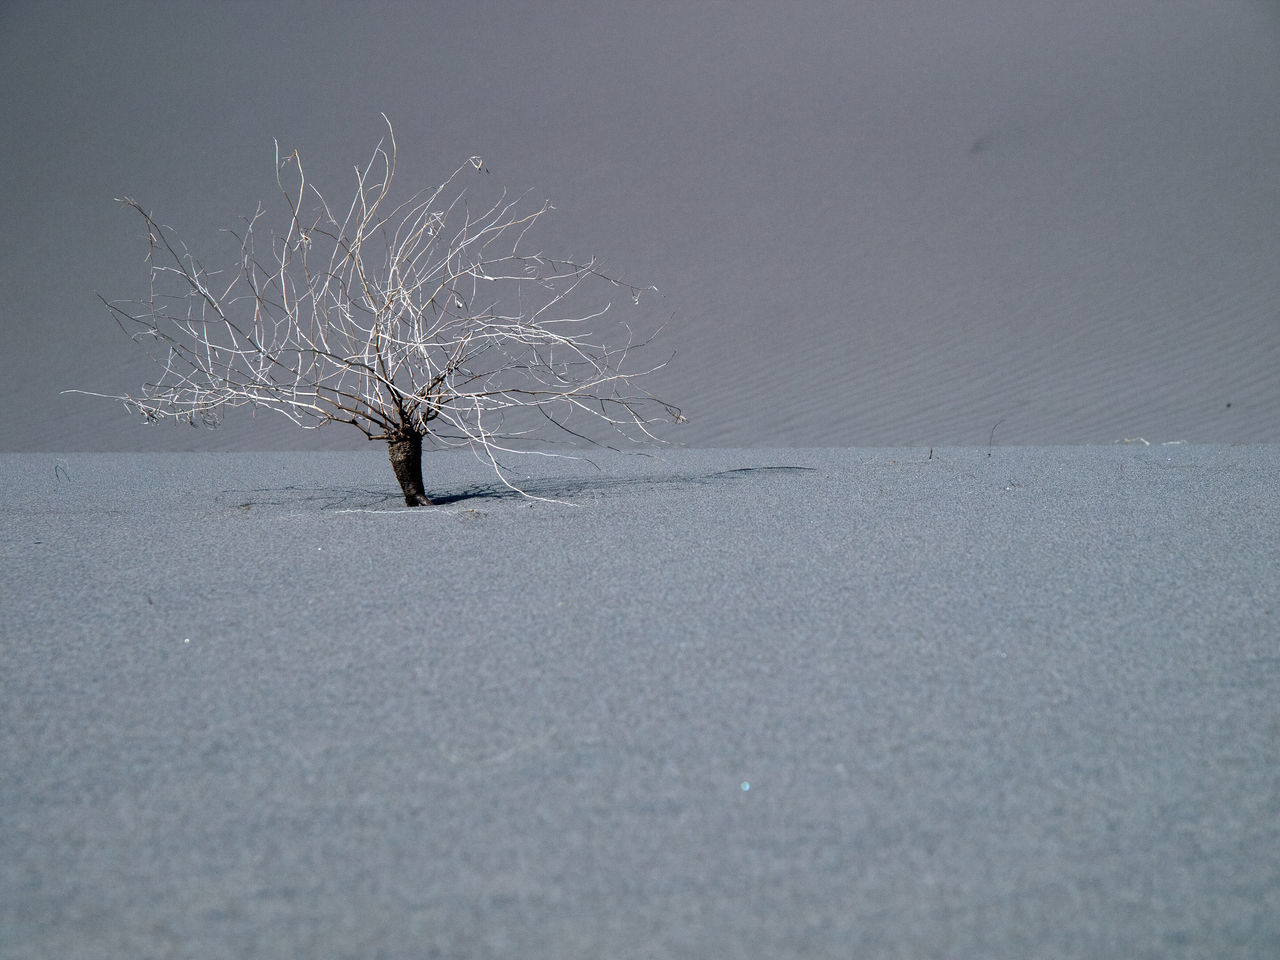 Bare Tree Beauty In Nature Branch Cold Temperature Day Dry Weed Isolation Landscape Lonely Plant Nature No People Outdoors Sand Snow Tough Life Toughness Tranquility Tree Weeds Winter